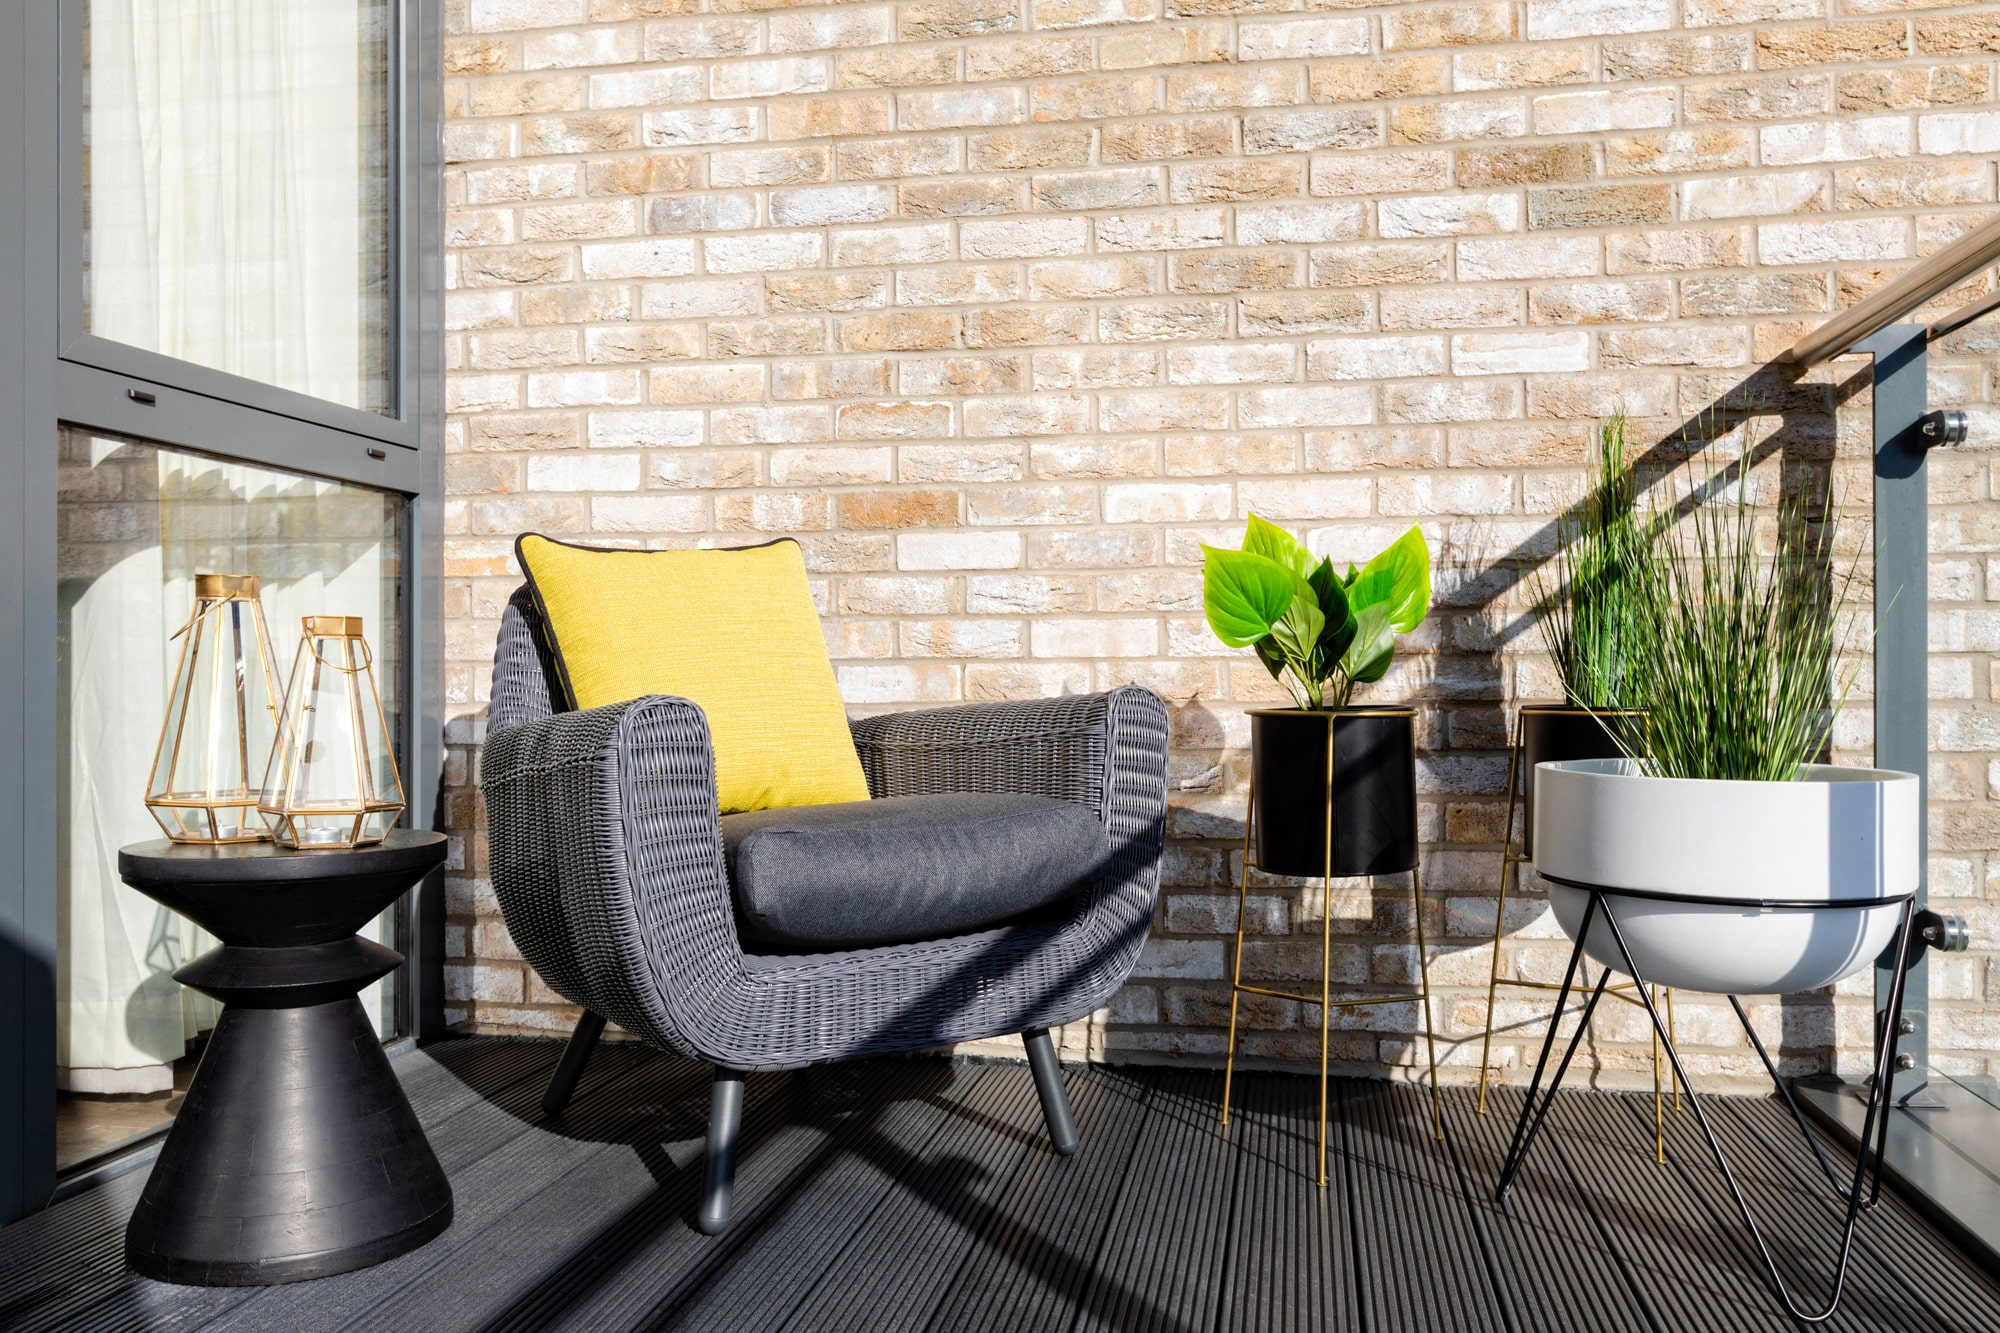 balcony decor photo: an armchair with yellow cushion, a round table, two plants on stands